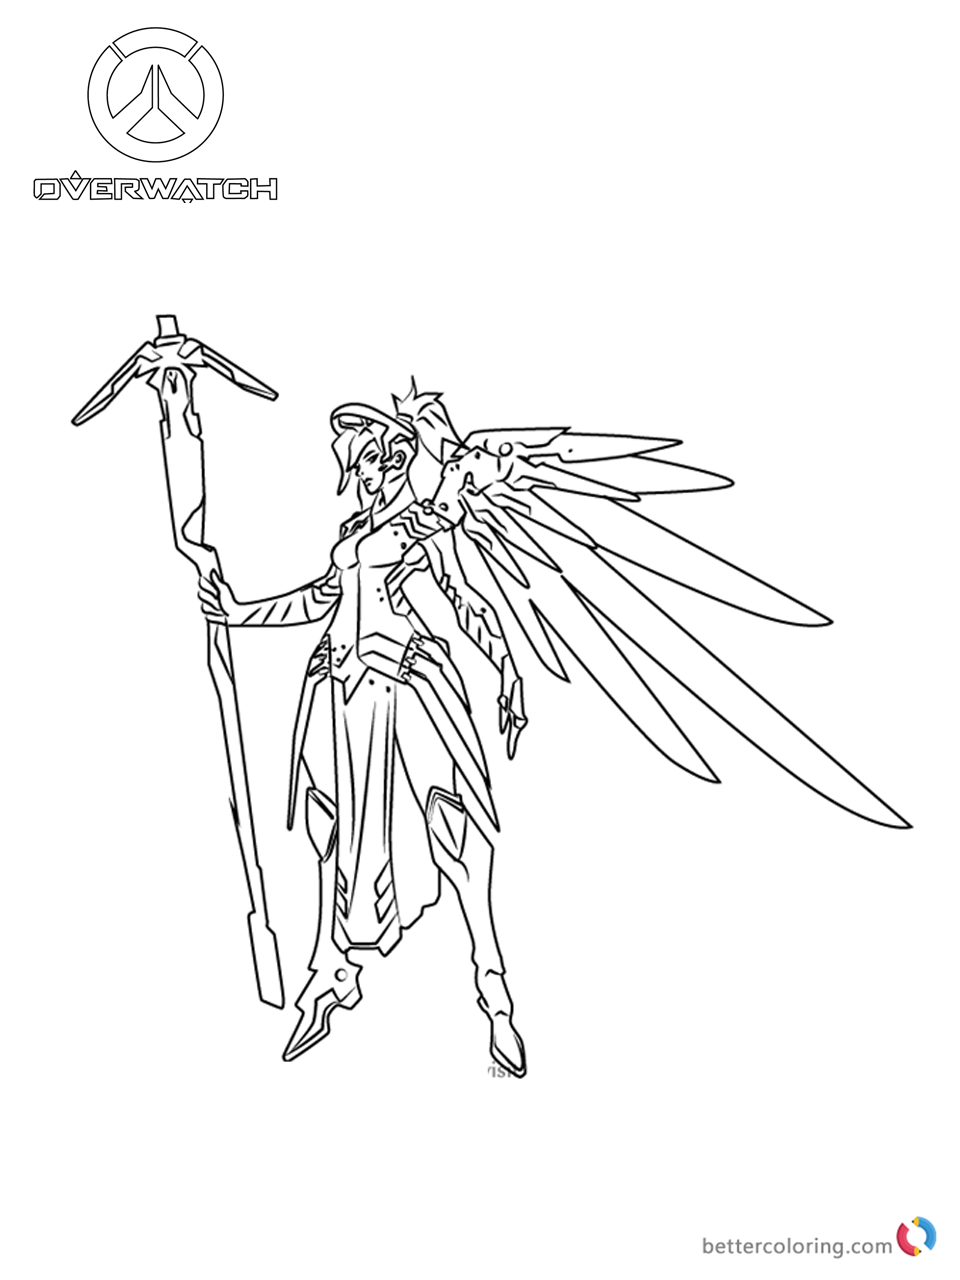 Mercy from Overwatch coloring pages printable